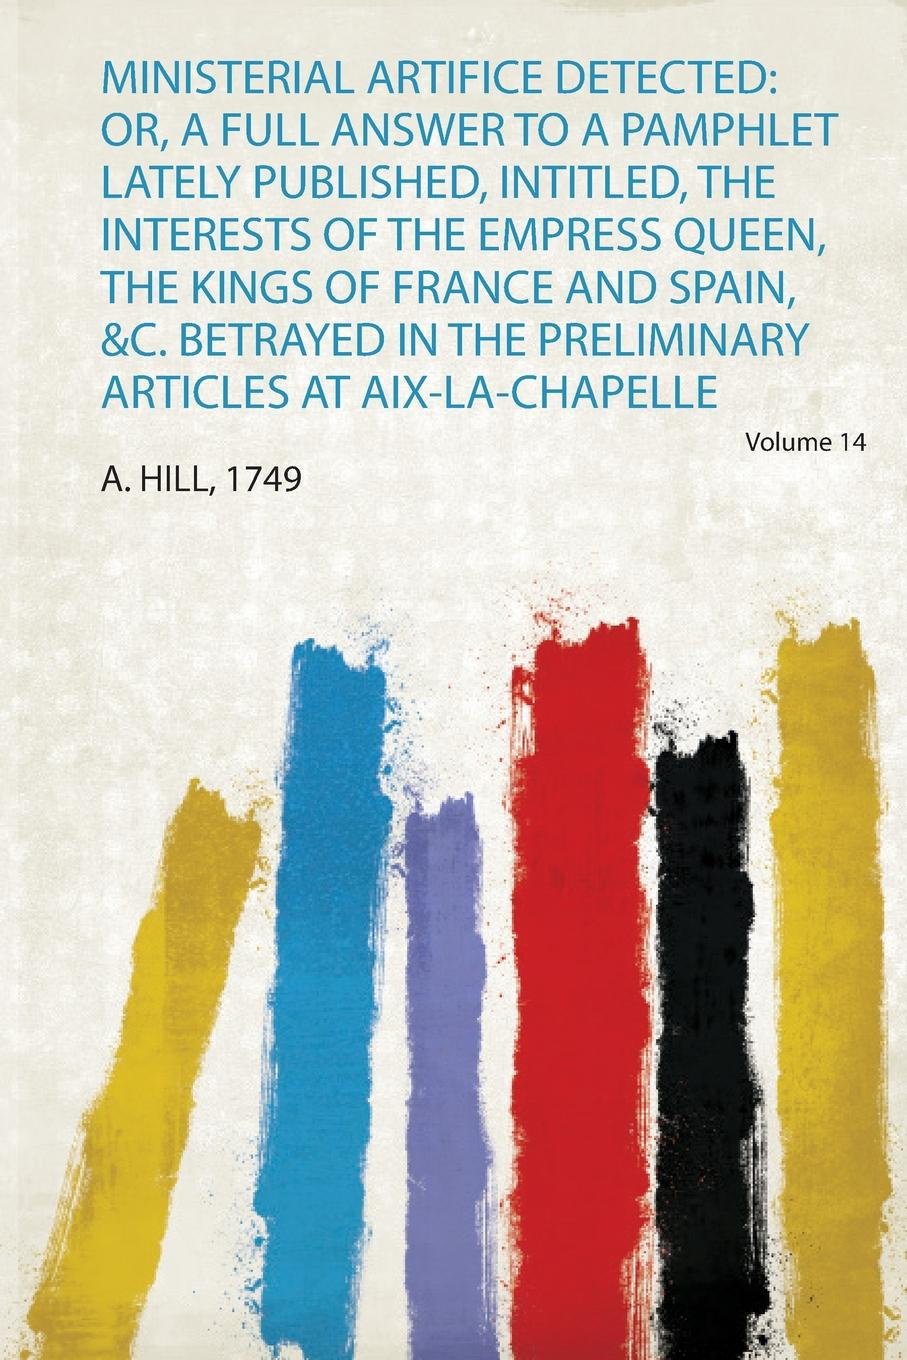 Ministerial Artifice Detected. Or, a Full Answer to a Pamphlet Lately Published, Intitled, the Interests of the Empress Queen, the Kings of France and Spain, &C. Betrayed in the Preliminary Articles at Aix-La-Chapelle